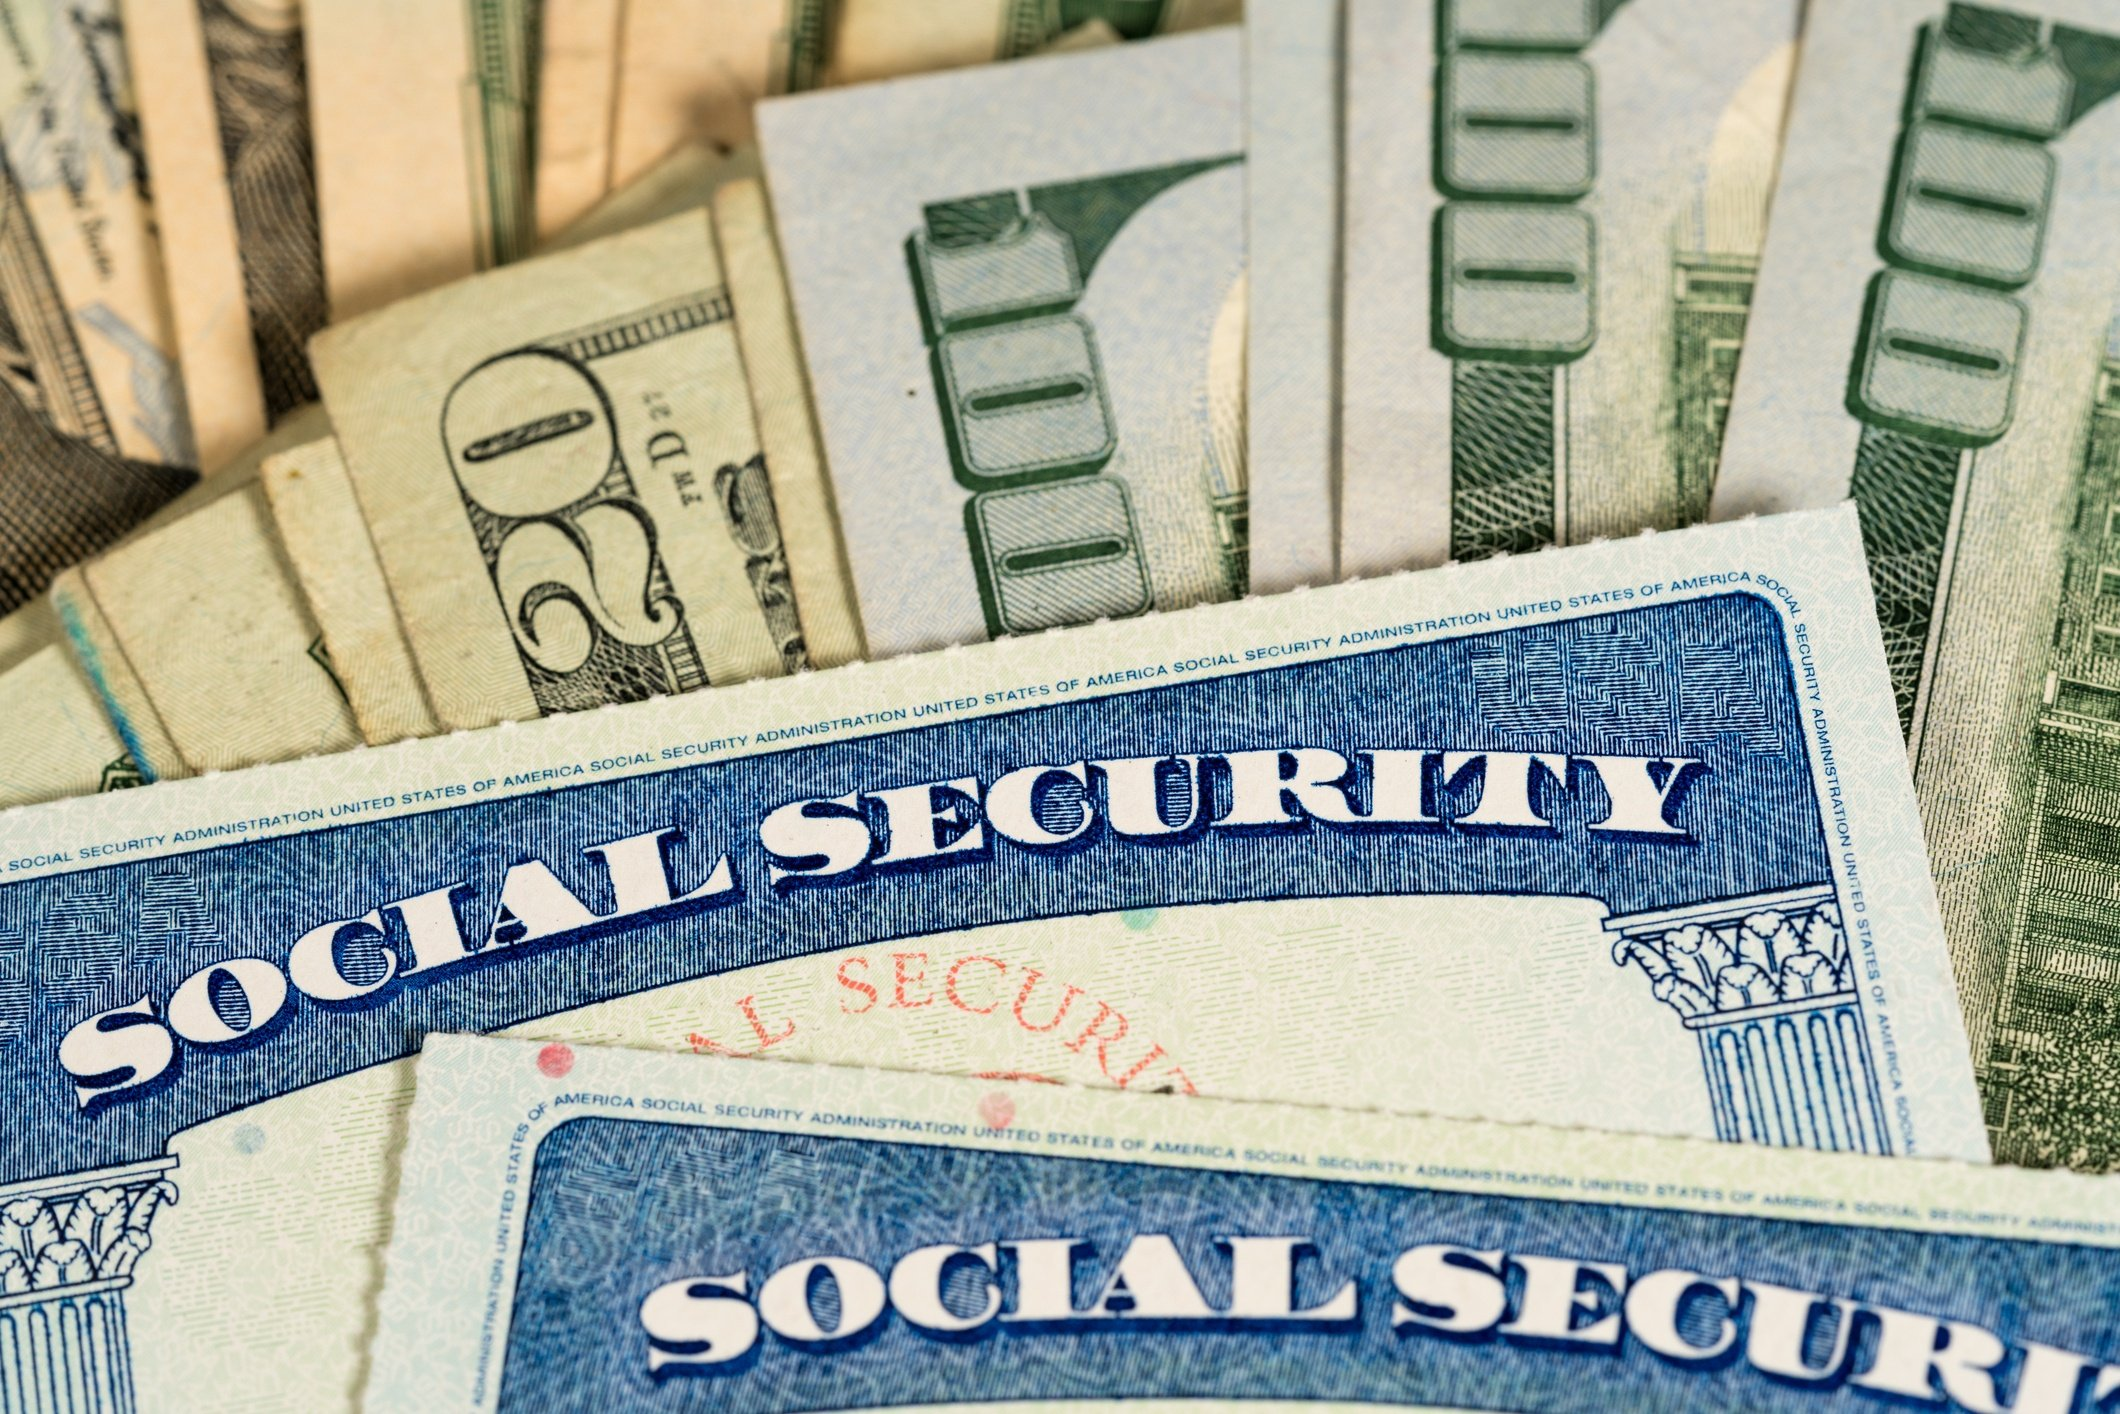 Social Security cards and U.S. dollars